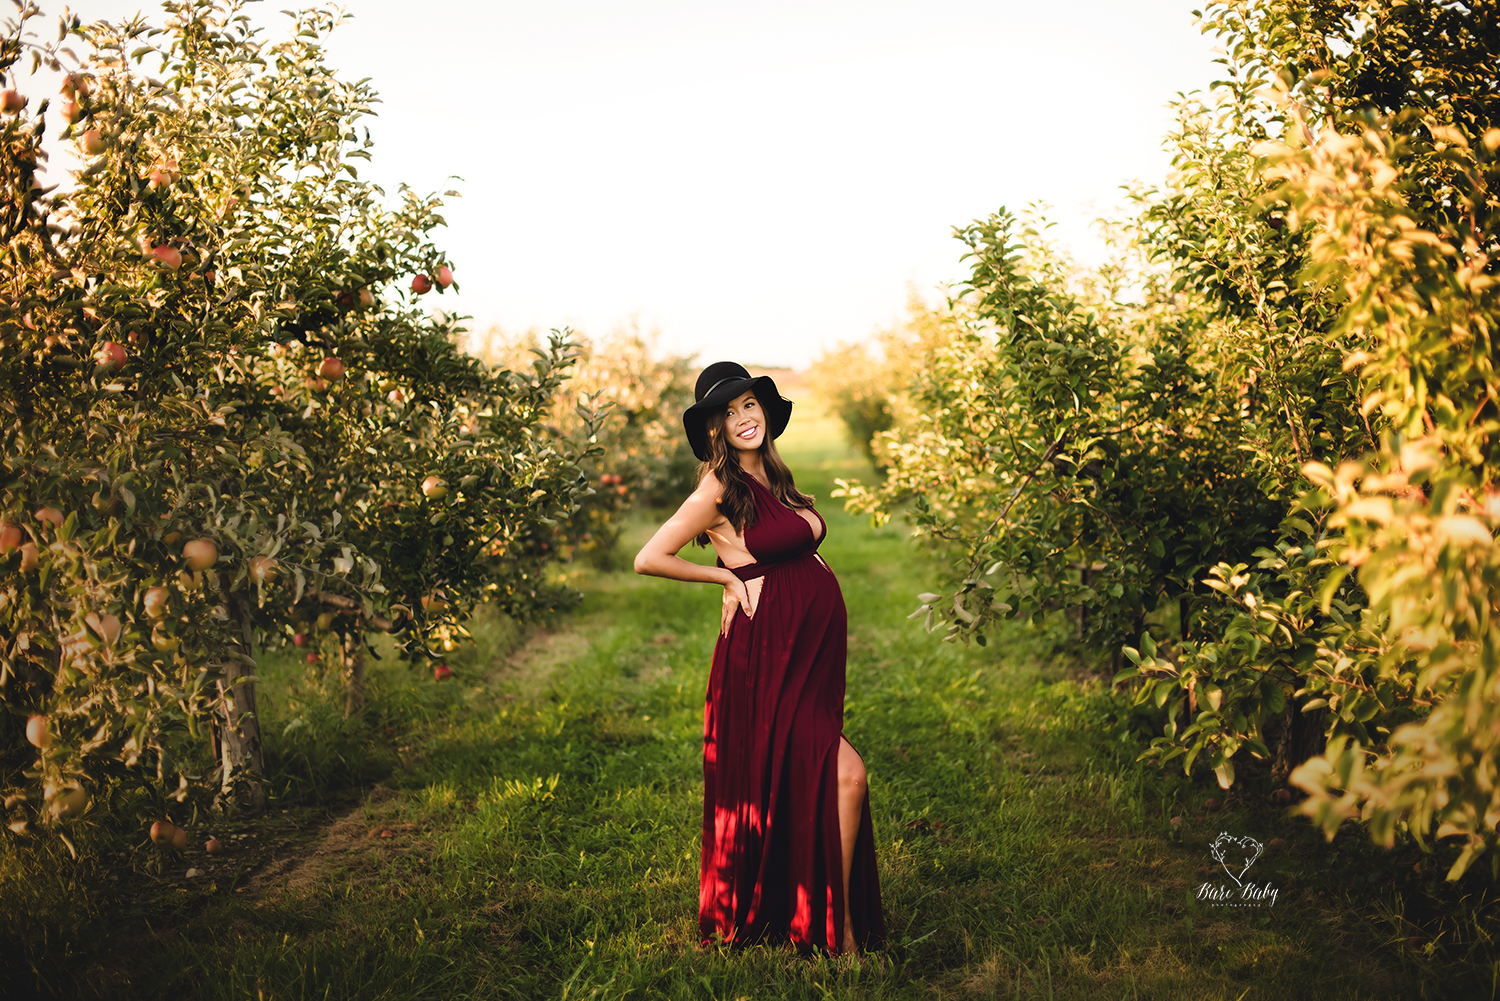 ohio-maternity-photographer-barebabyphotography.jpg